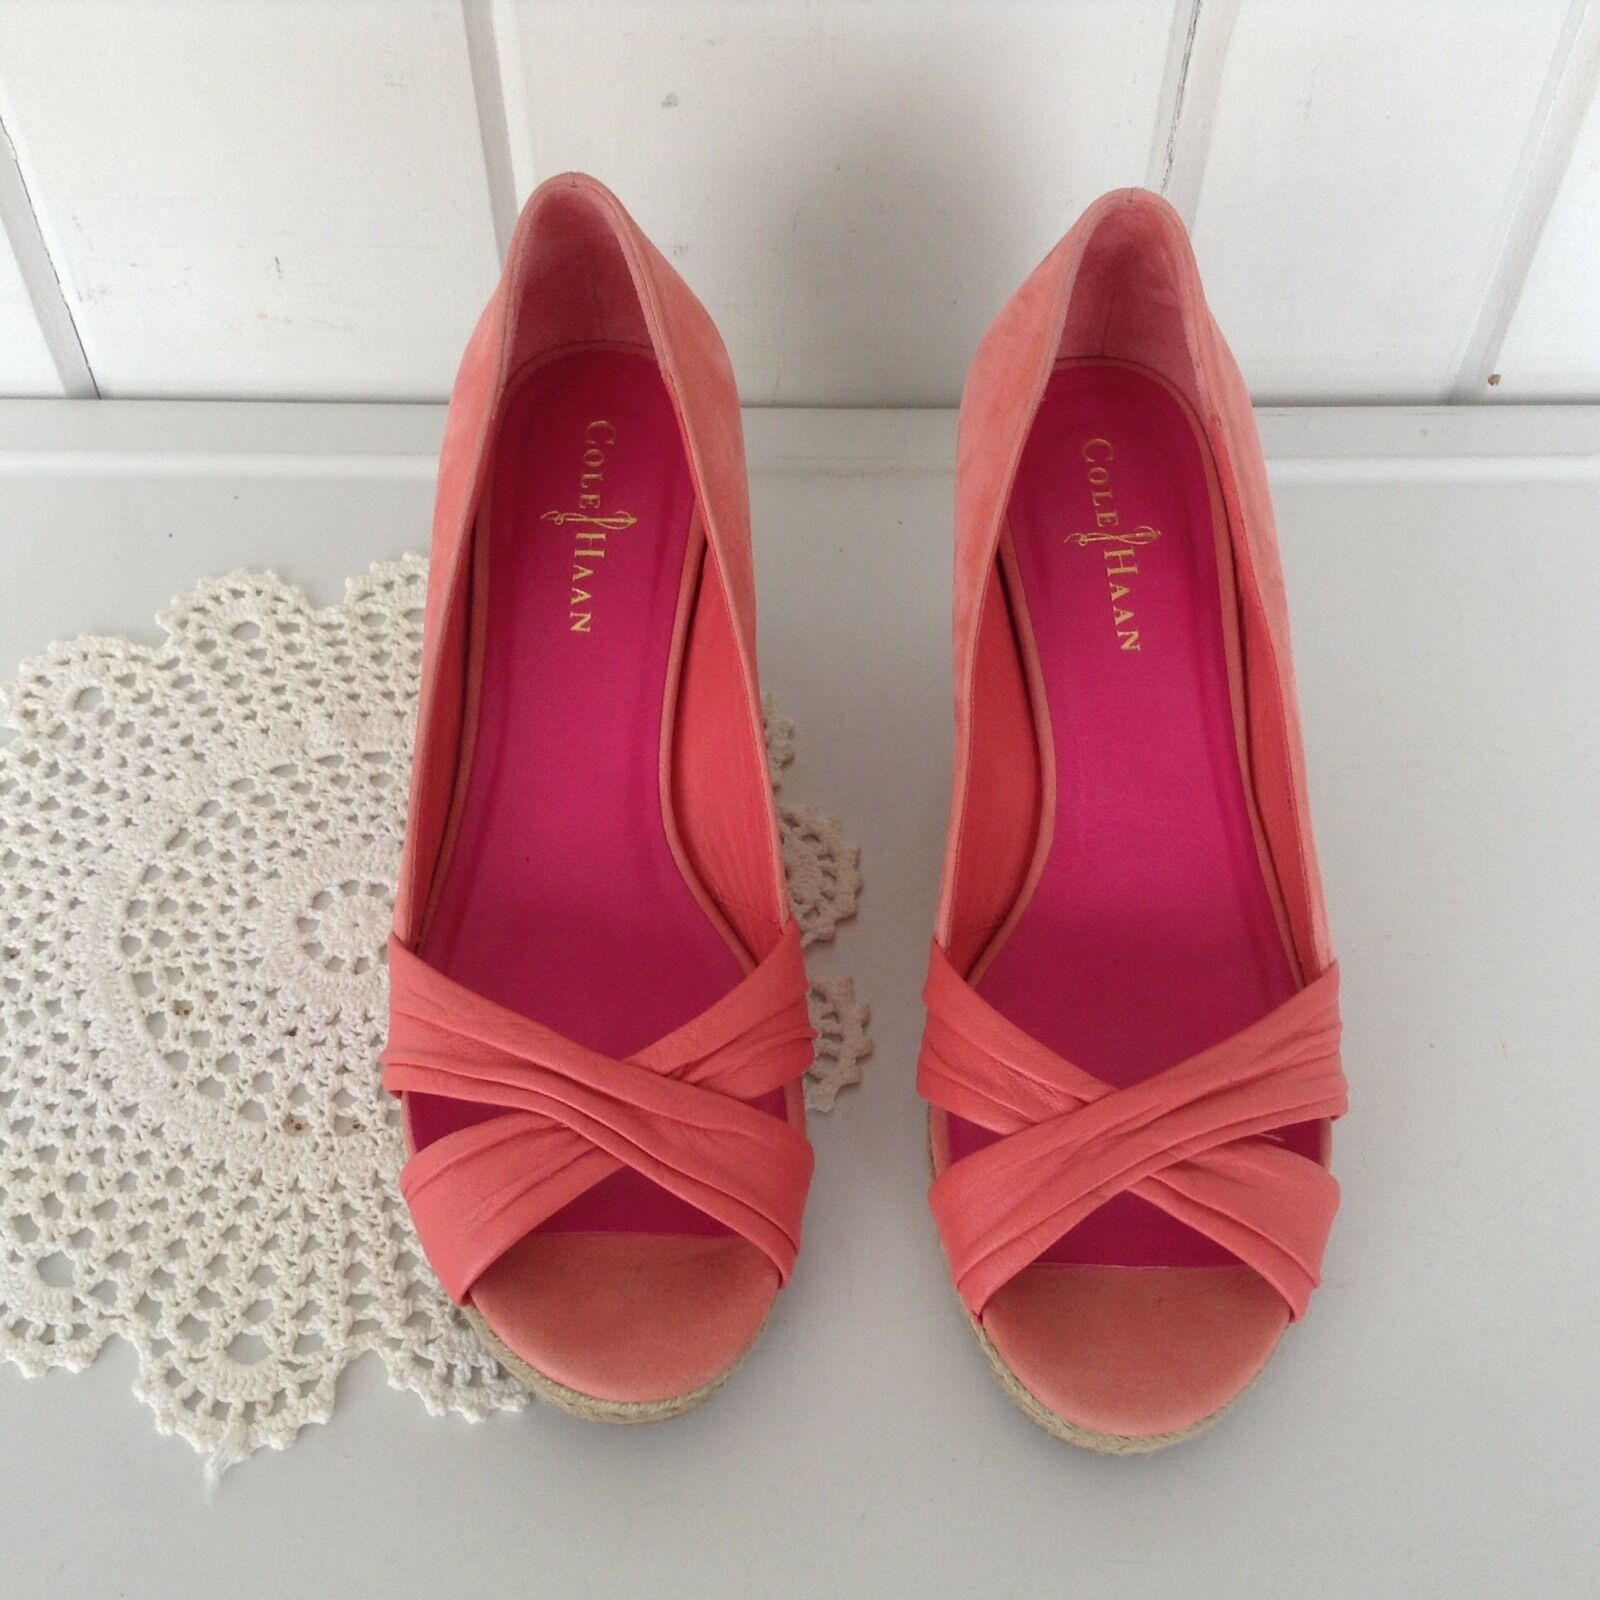 Cole Haan Wedge Coral Pump Suede Like Open Toe chaussures Sz 8 1 2 - 3  heel